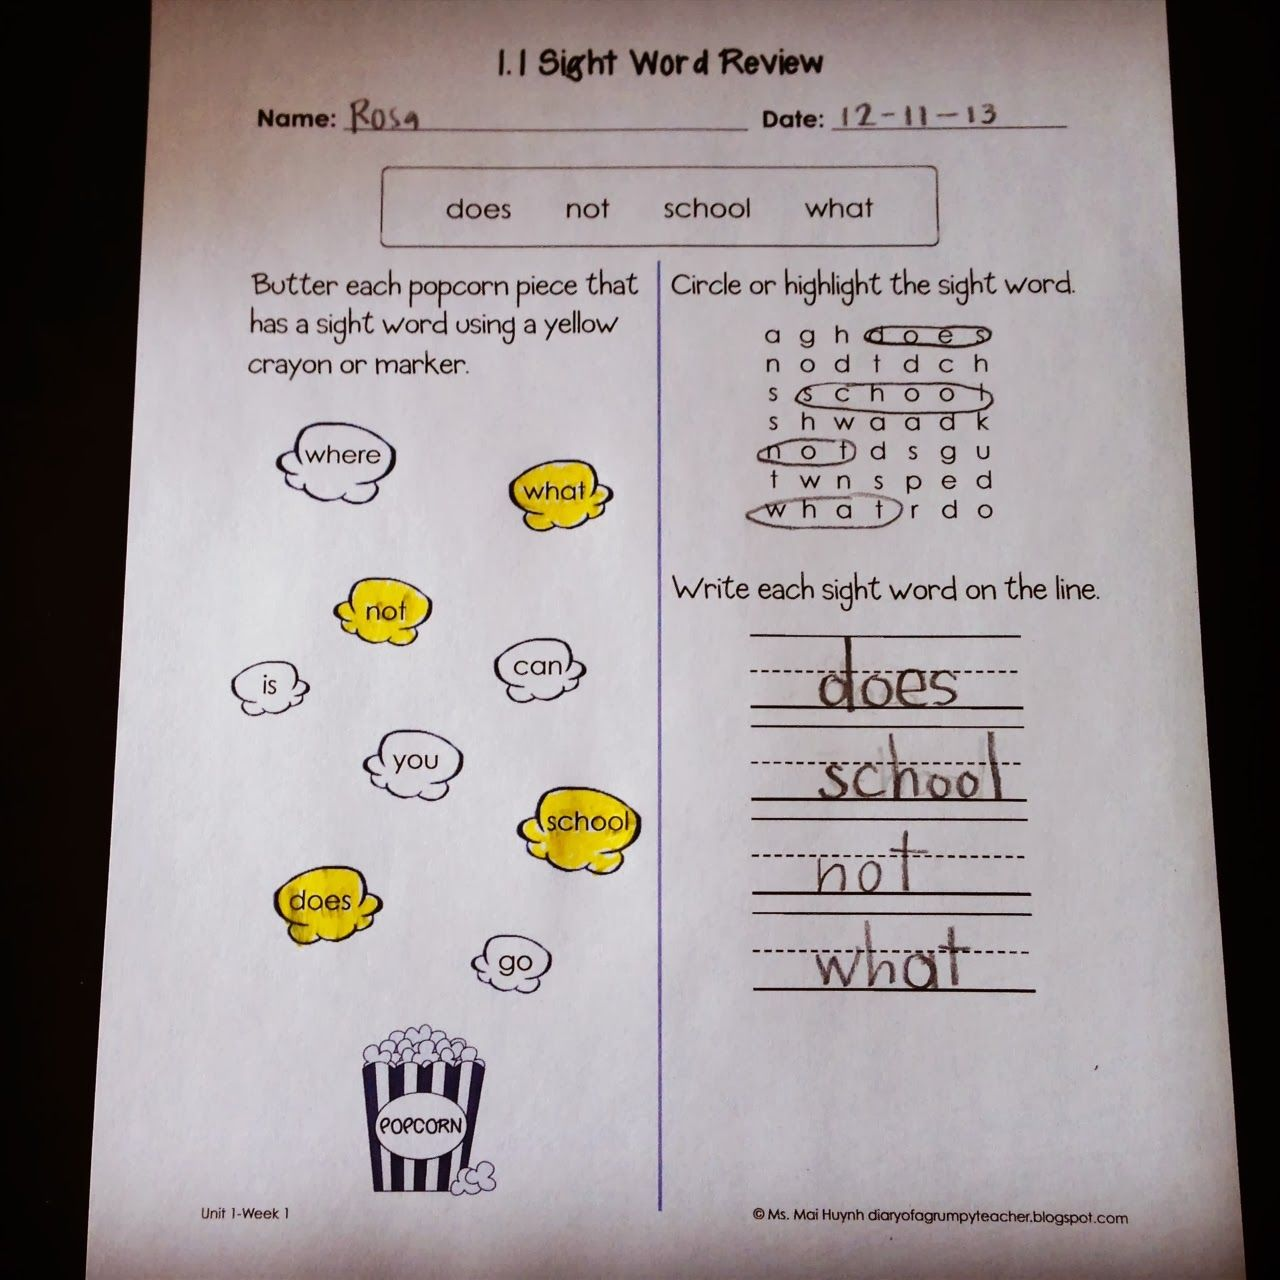 Weekly Worksheets To Review 1st Grade Wonders Sight Words